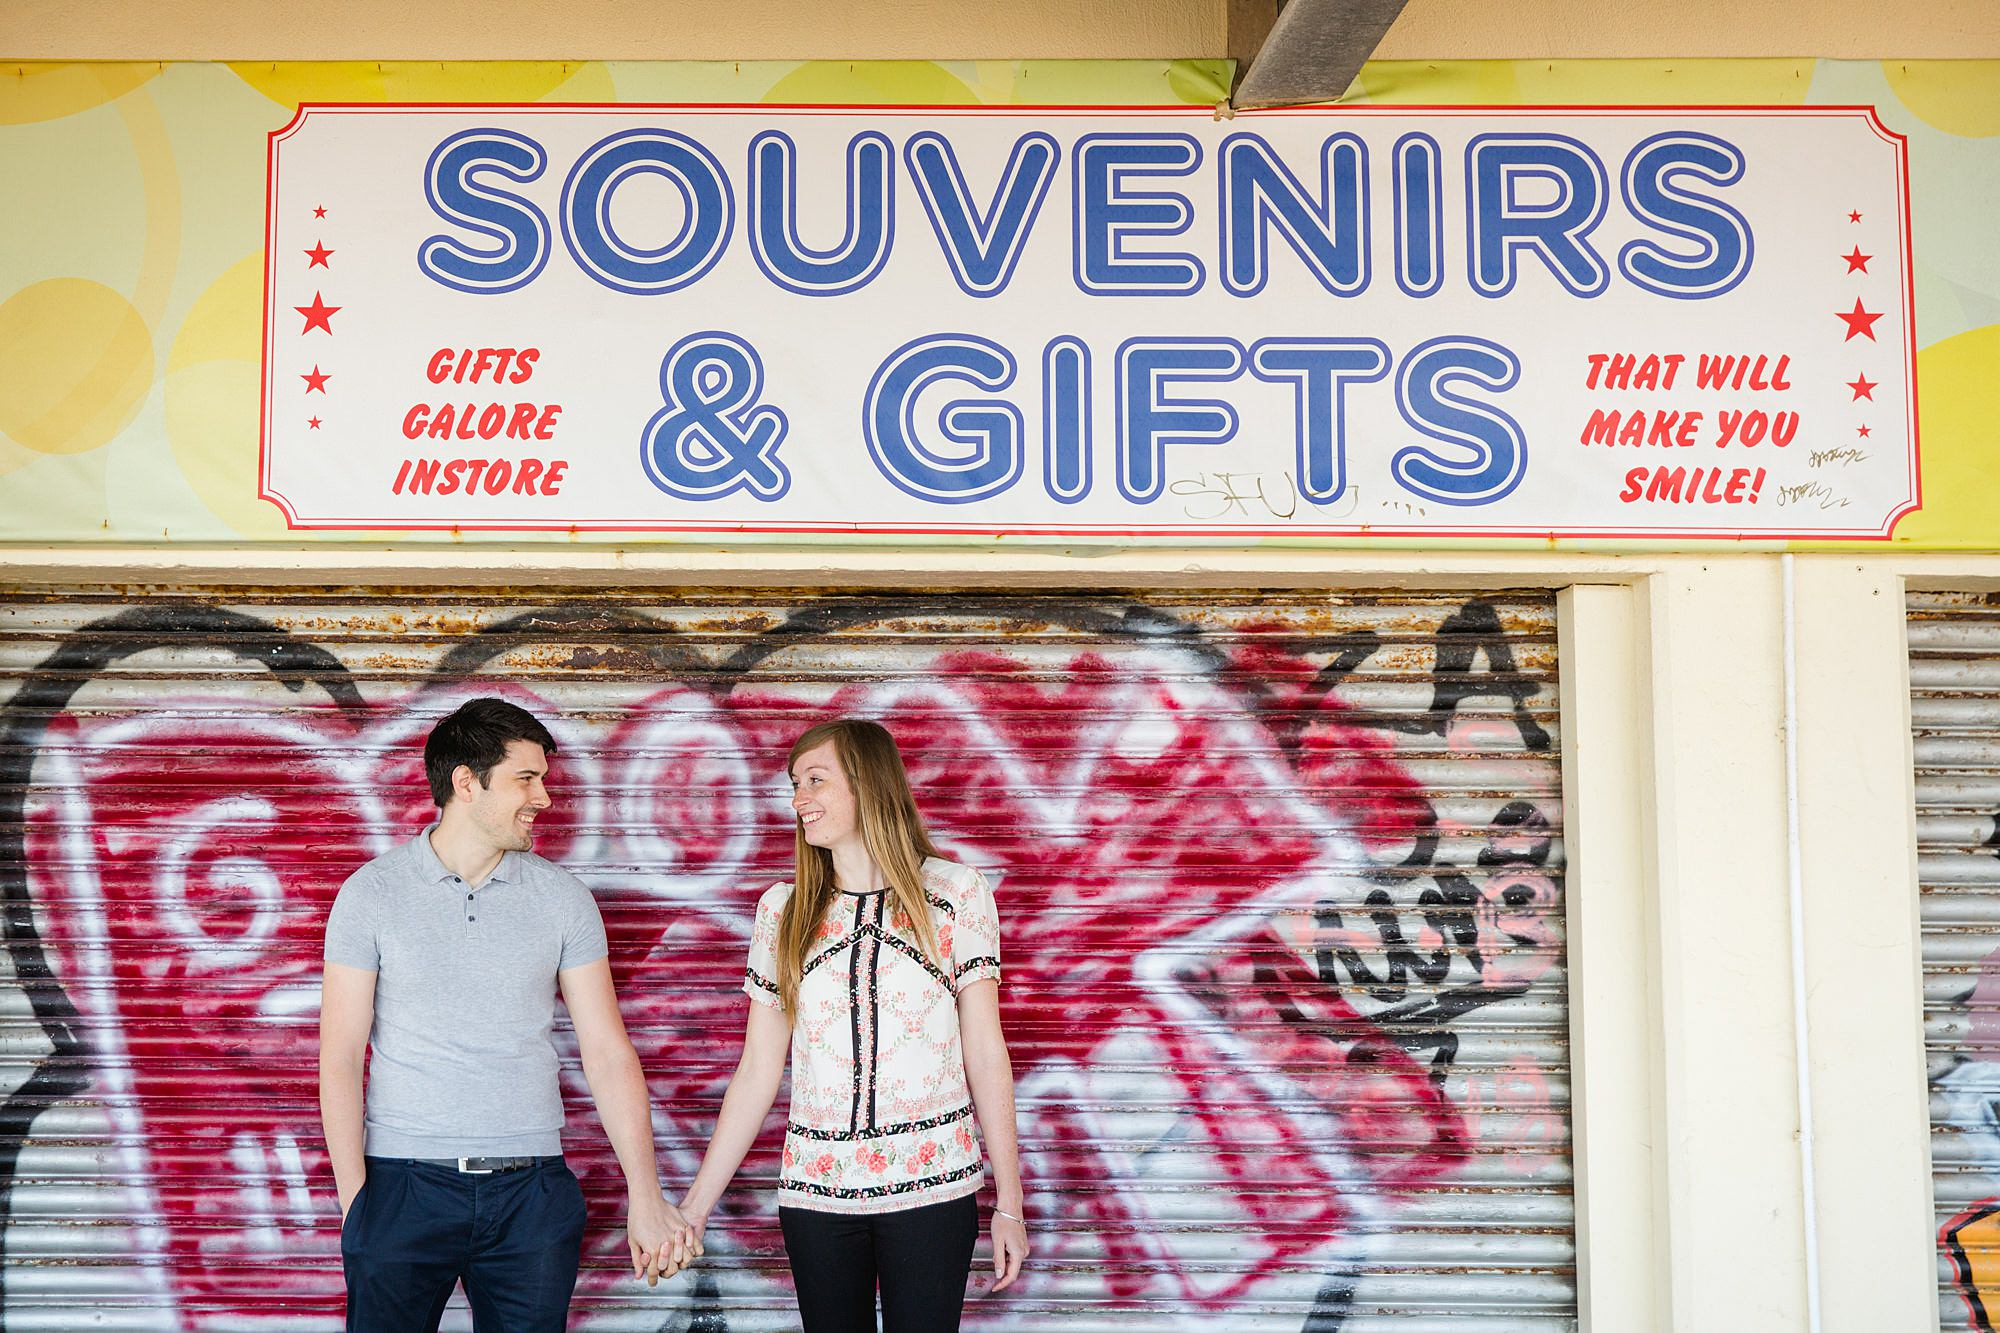 Fun Brighton engagement shoot couple in front of souvenir sign